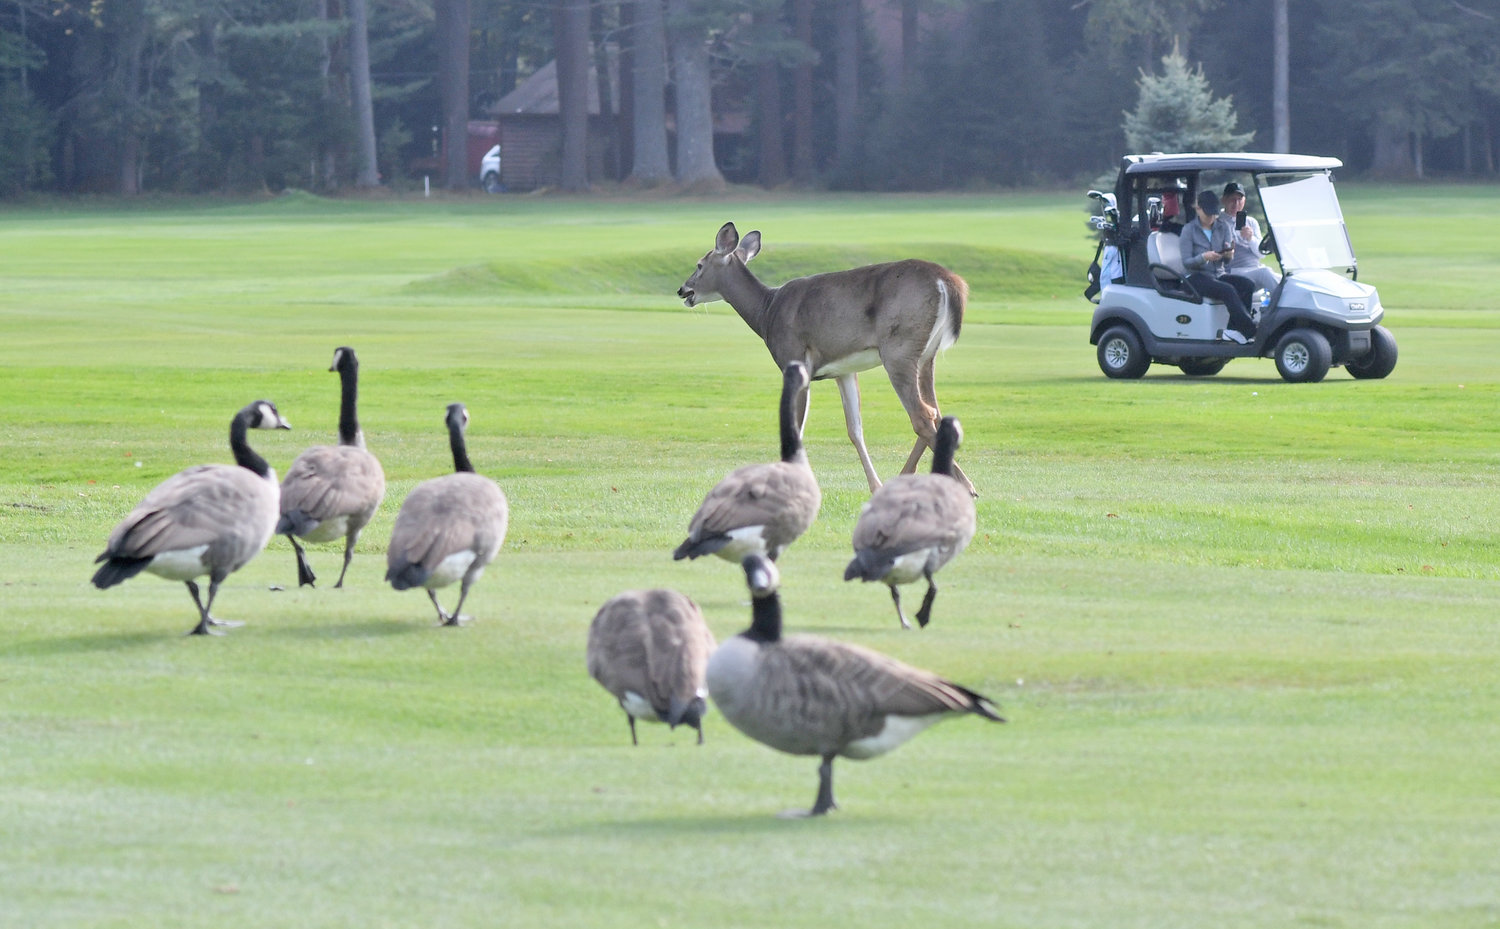 GEESE, DEER AND GOLFERS — OH MY! — Thendara Golf Club is full of life. Geese, deer and a couple of golfers line the seventh fairway on Thursday afternoon.